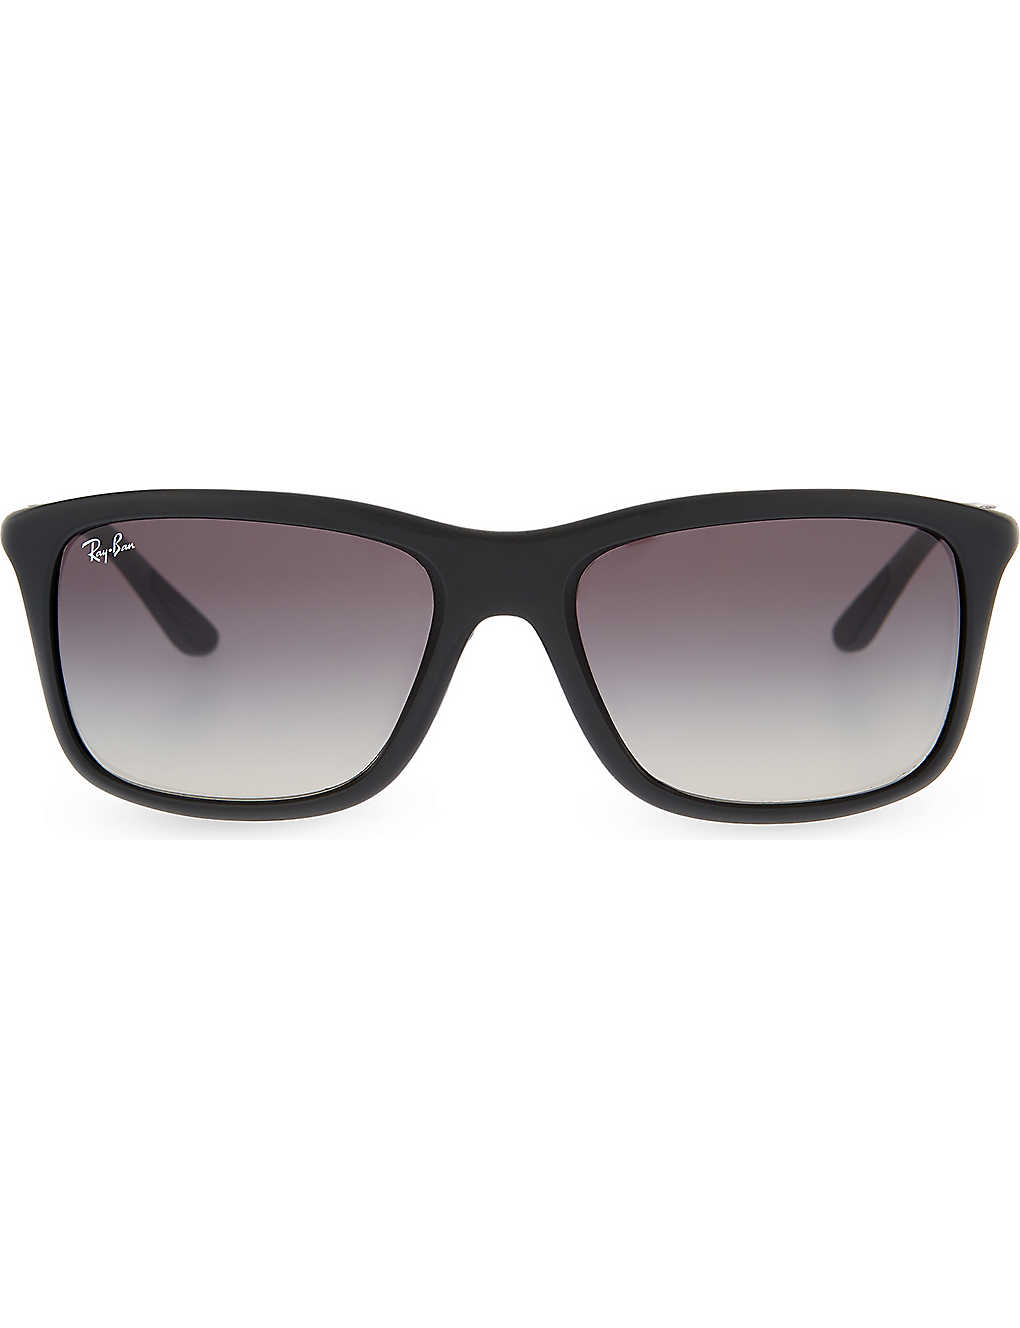 944100789aa RAY-BAN - RB8352 square-frame sunglasses